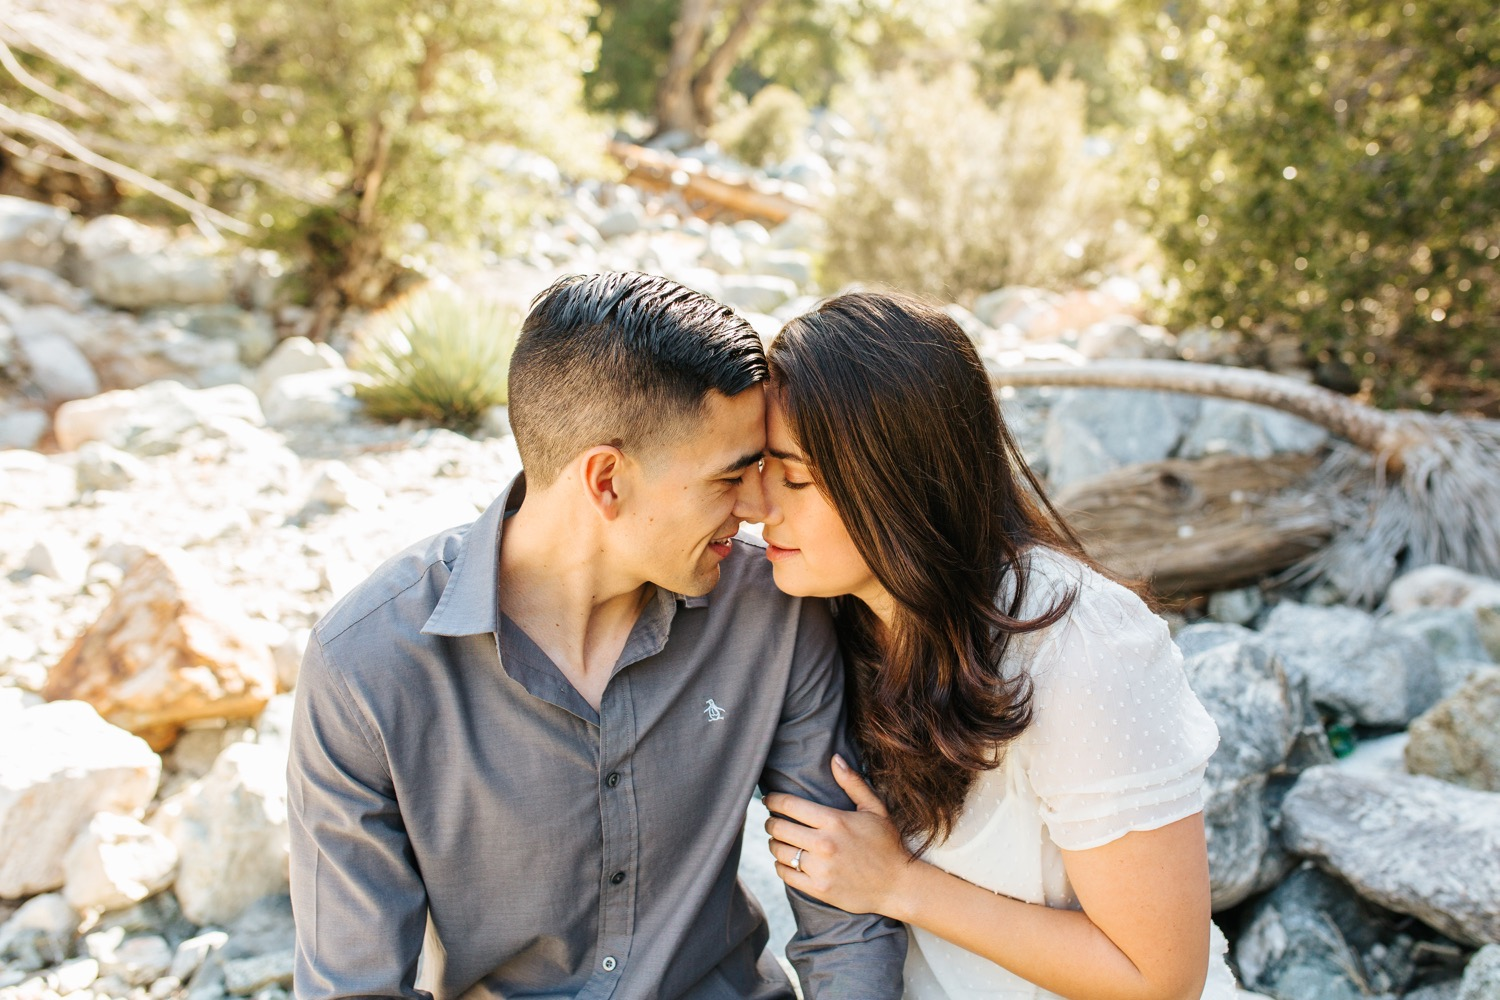 Southern California Engagement Session in the mountains - https://brittneyhannonphotography.com